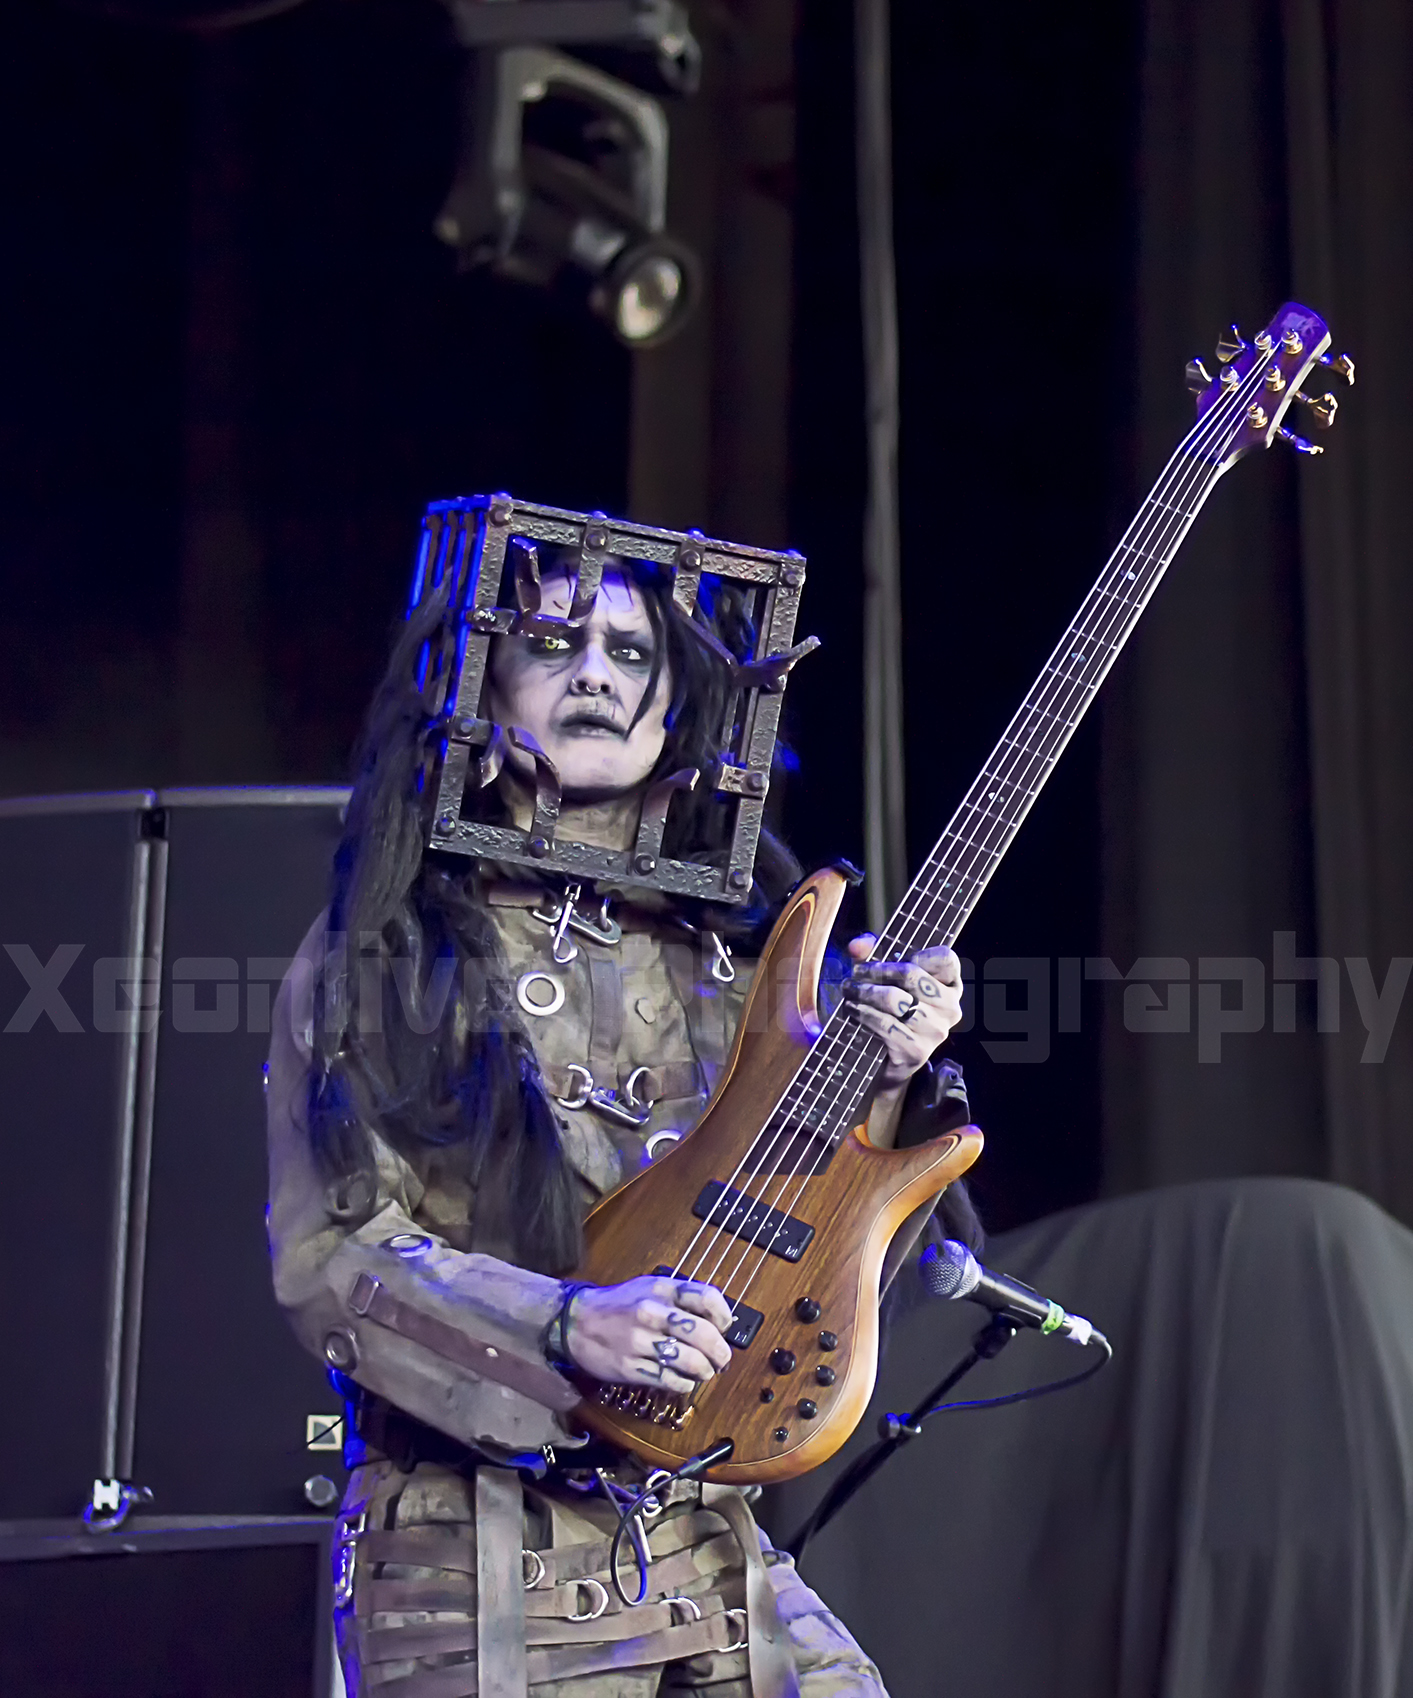 PHOTO GALLERY Motionless In White Hollywood Casino